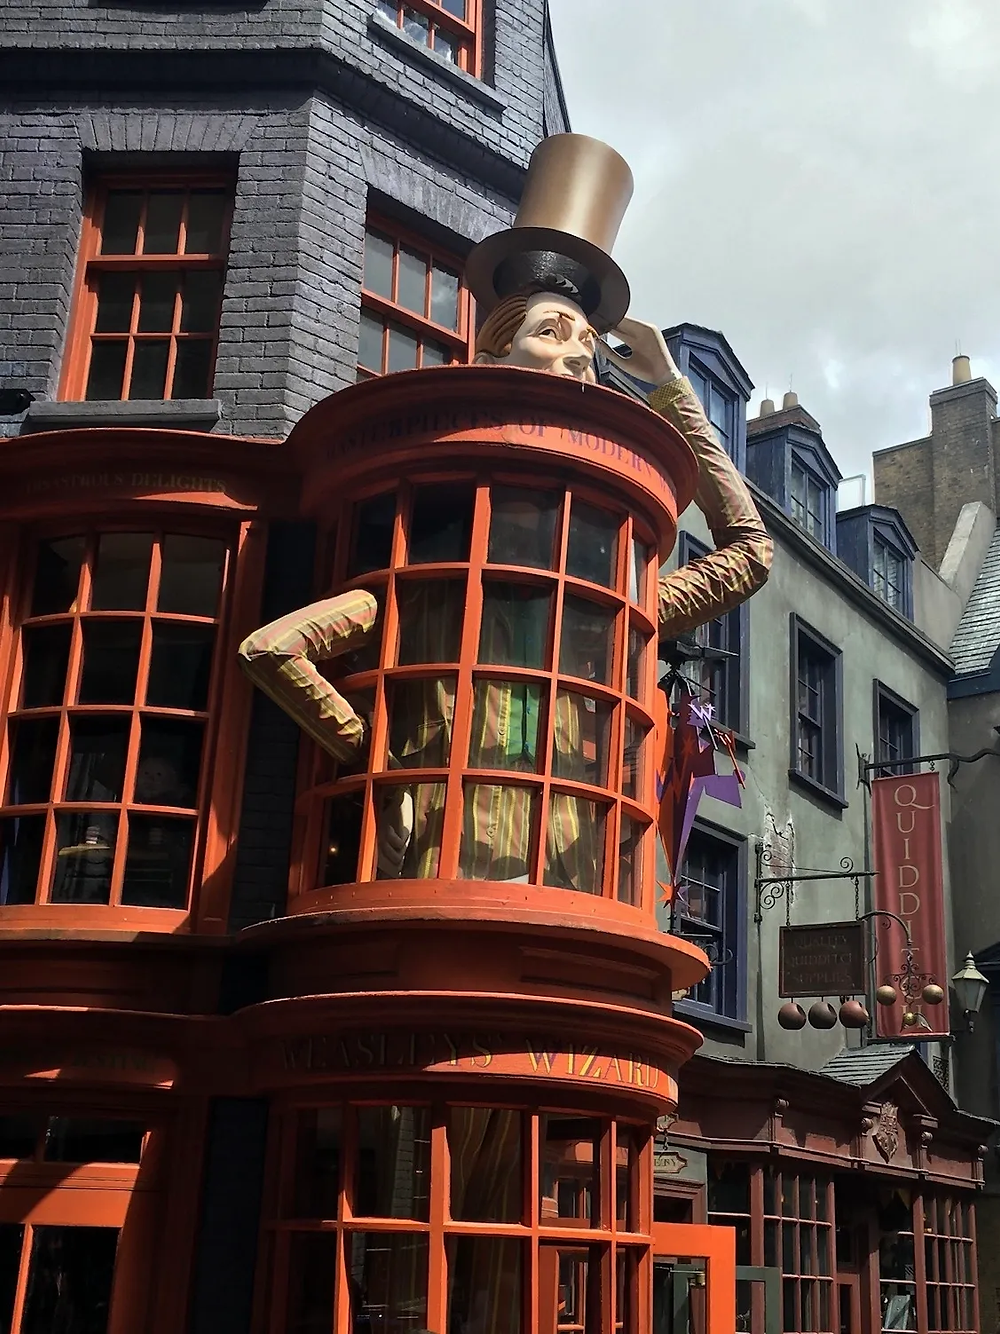 Shop window for Weazley's Wizard Wheezes shop in Diagon Alley